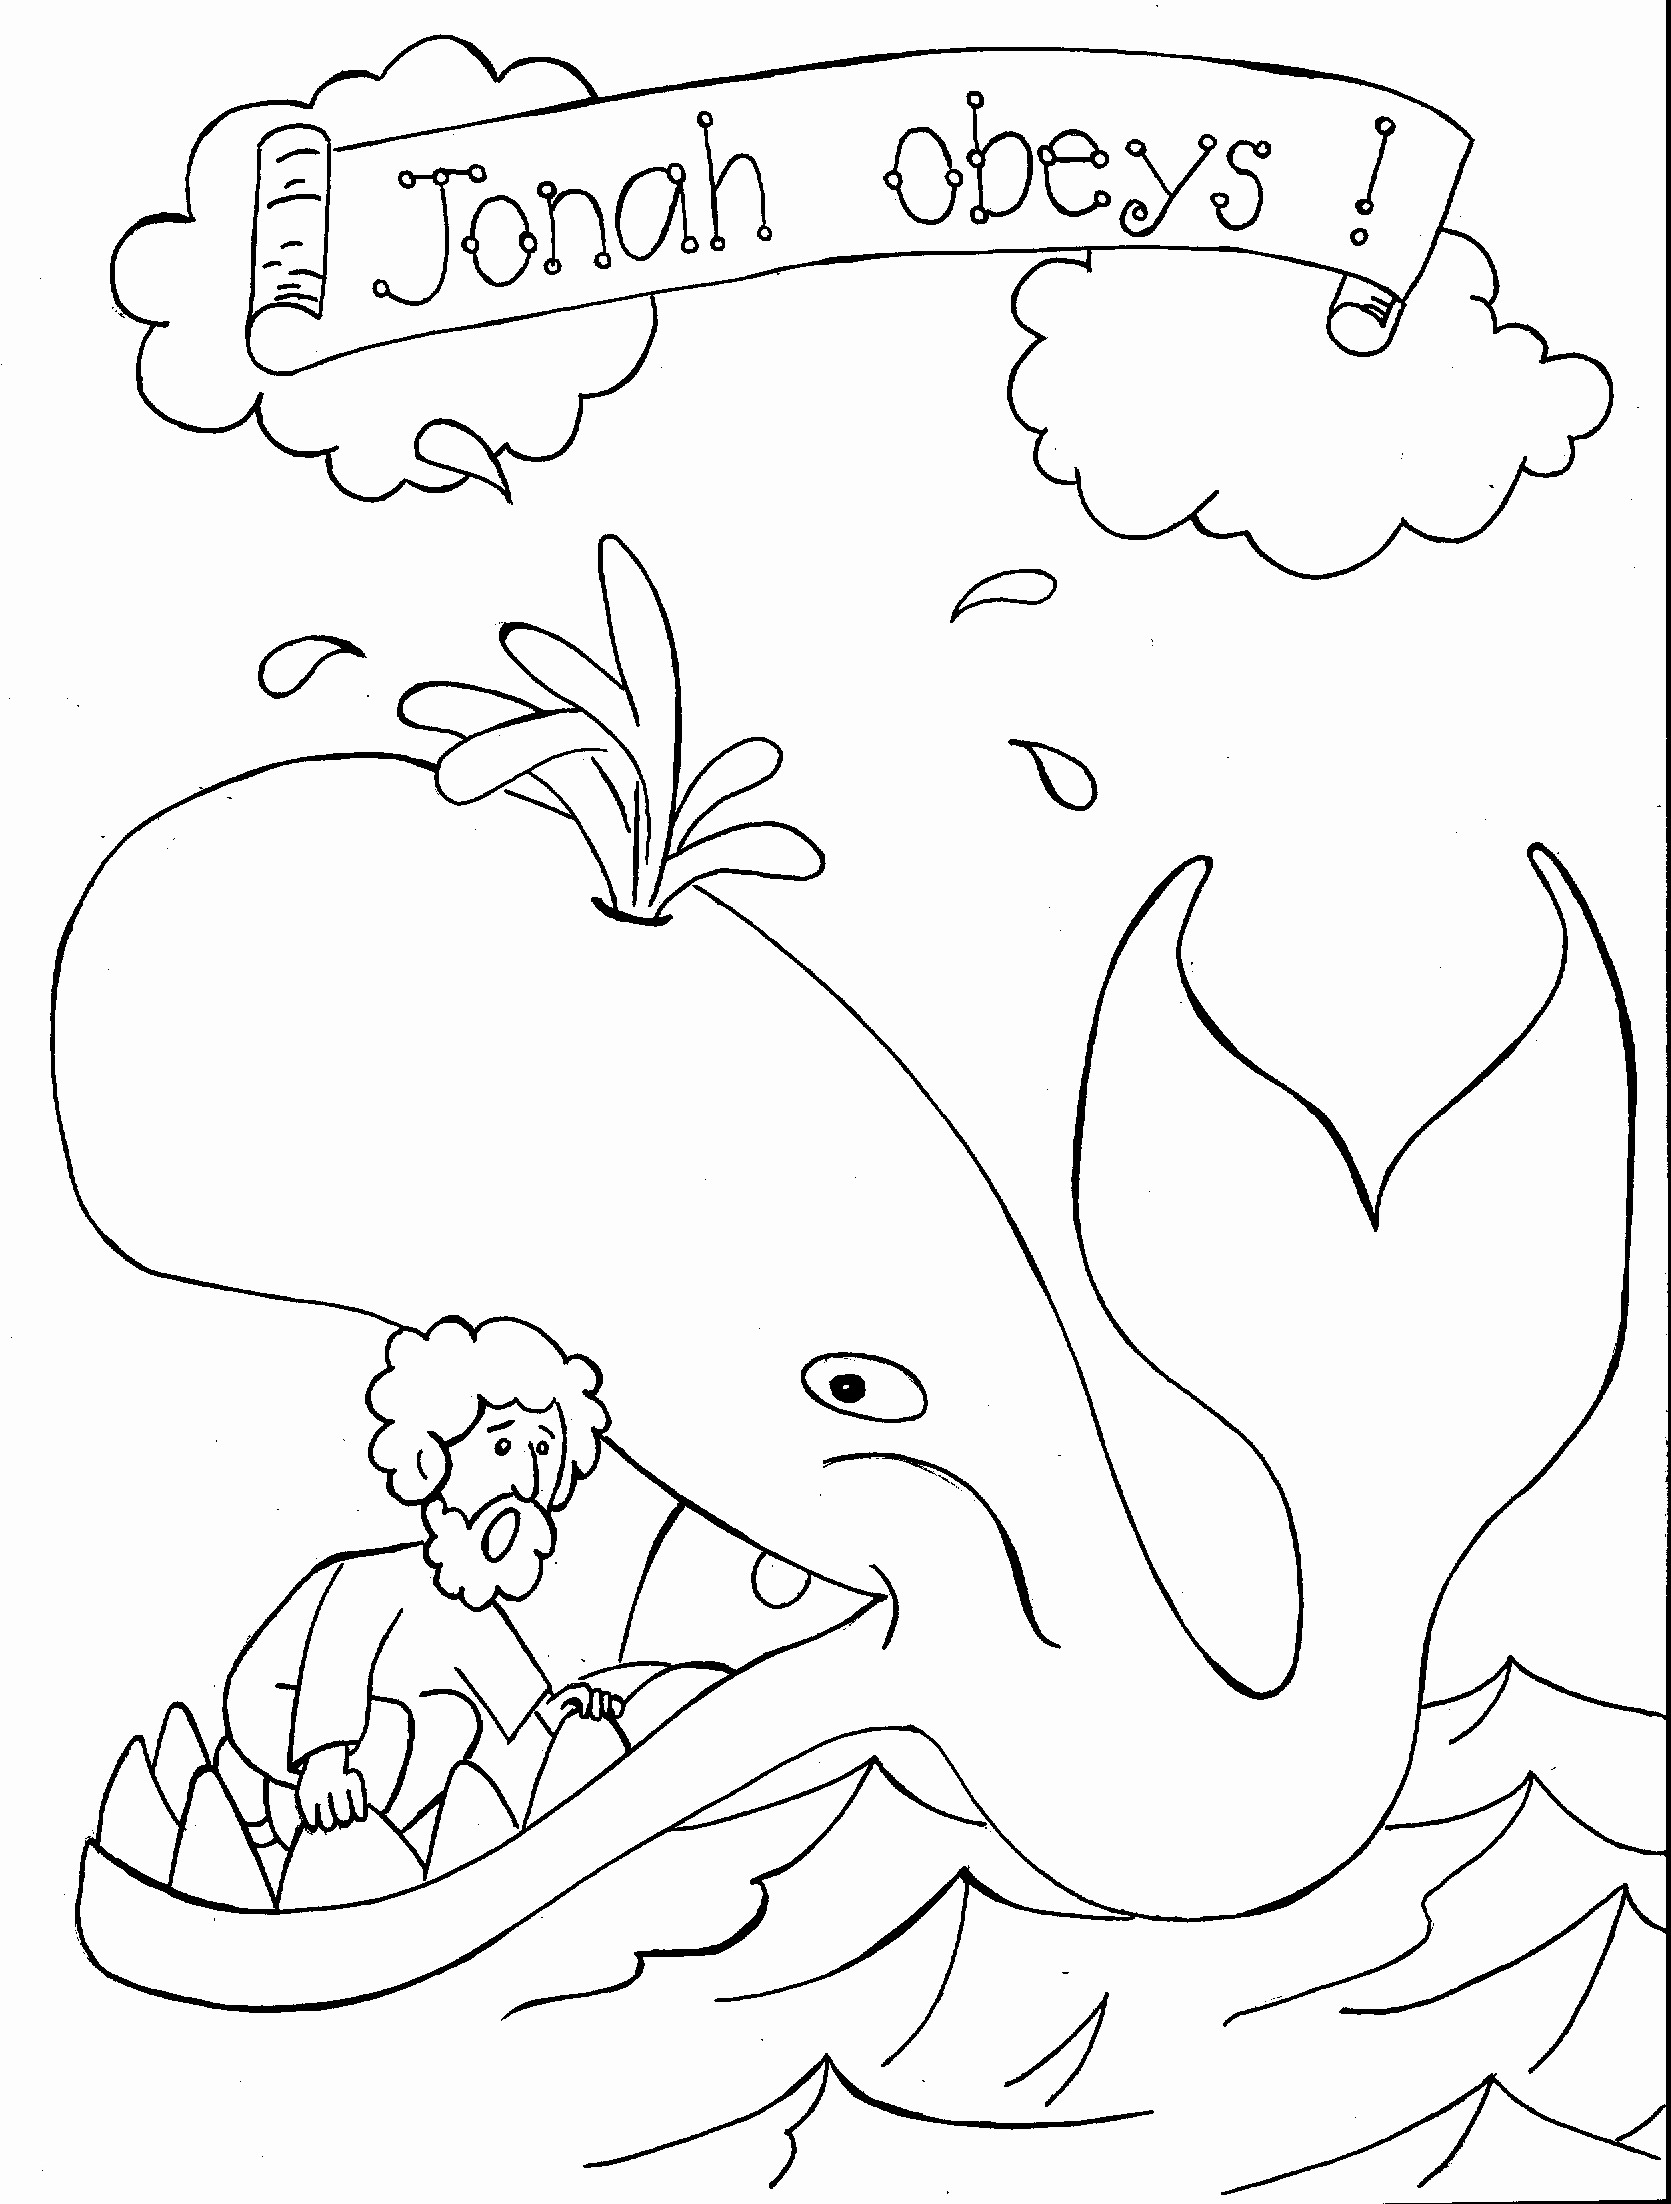 coloring pages bible stories Download-Bible Story Coloring Books Beautiful Bible Coloring Pages For Adults Best Best Od Dog Coloring Pages Bible Story Coloring Books Amazing Bible Story 9-m